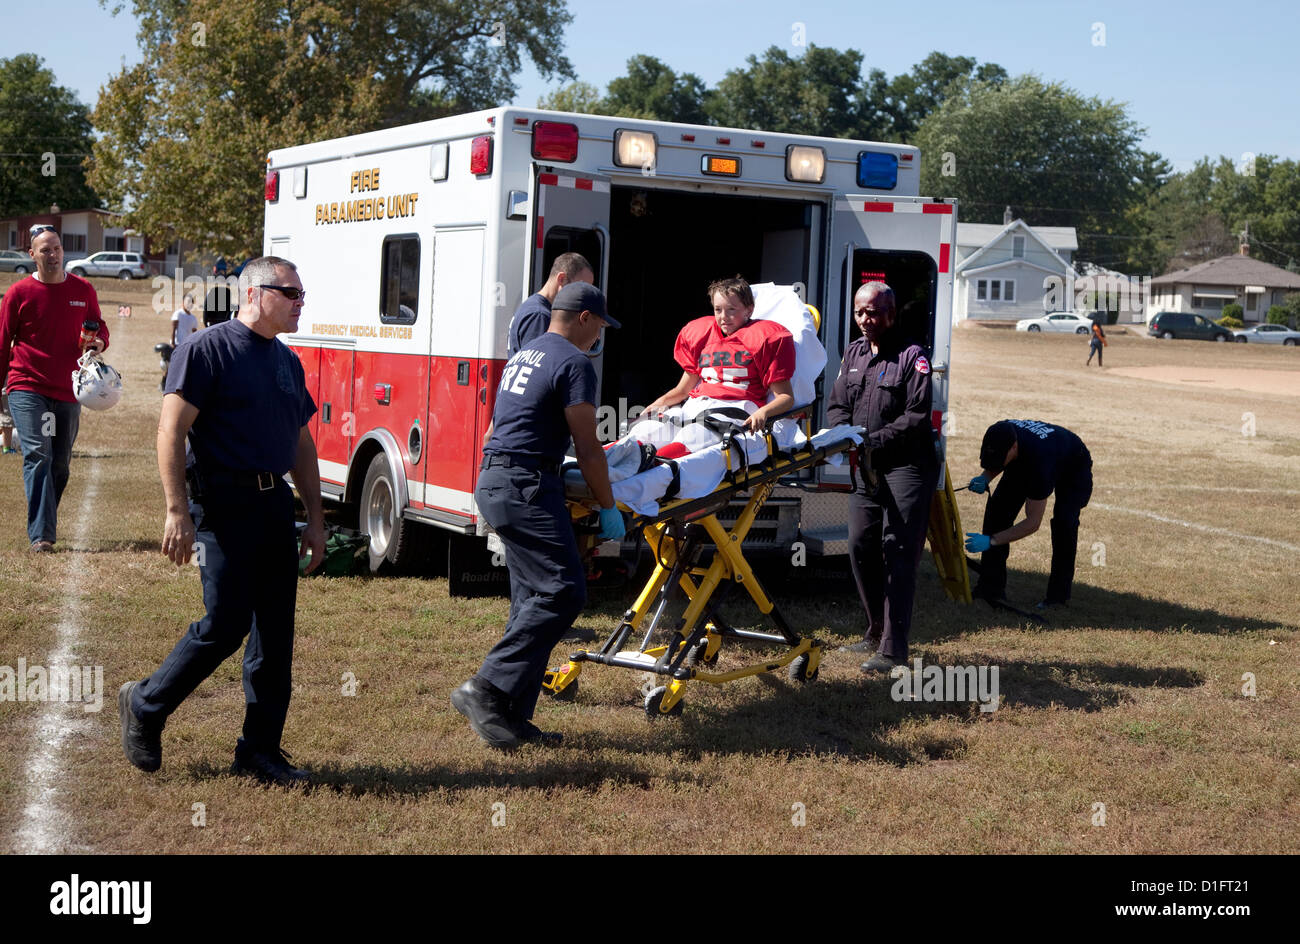 Paramedics wheel football player with possible concussion to emergency vehicle. Conway Height's Park St Paul - Stock Image